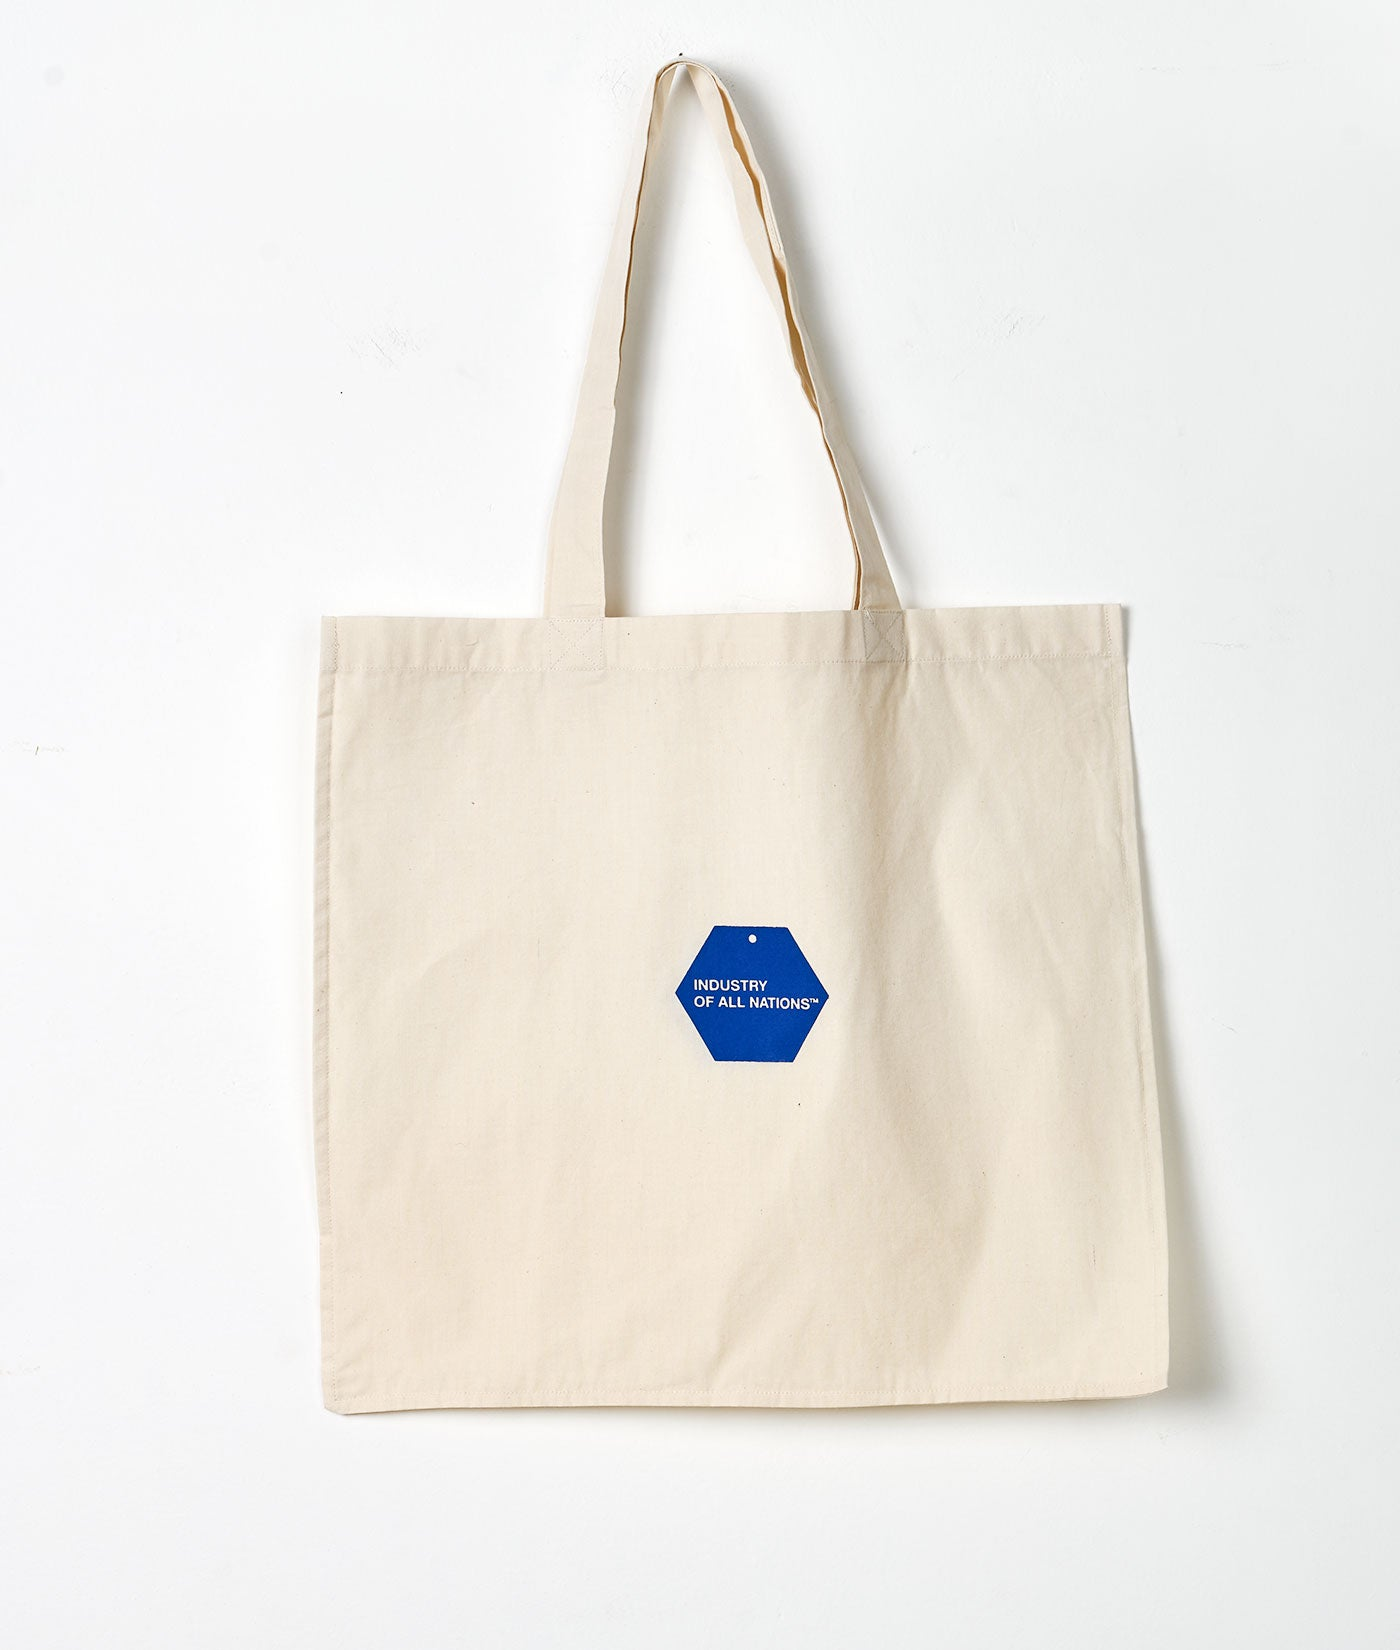 Industry of All Nations Sustainable Organic Cotton Tote Bag